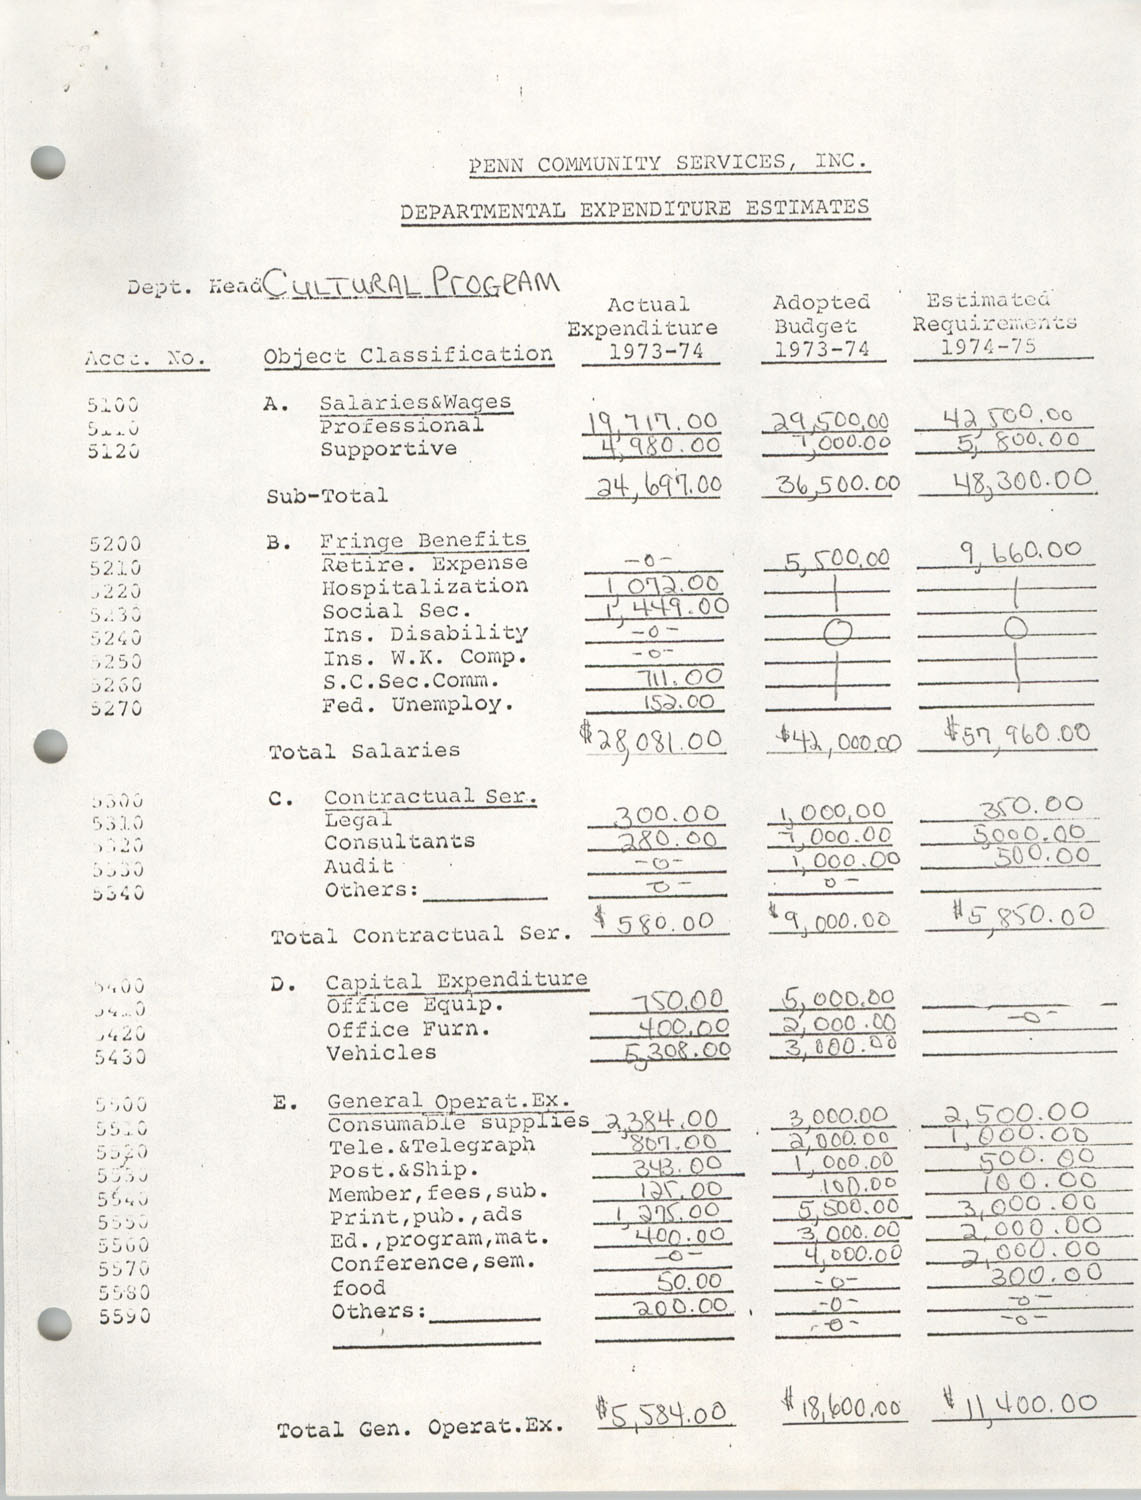 Departmental Expenditure Estimates and Salaries and Wages Estimates, Business Development, Penn Community Services, 1973-1975